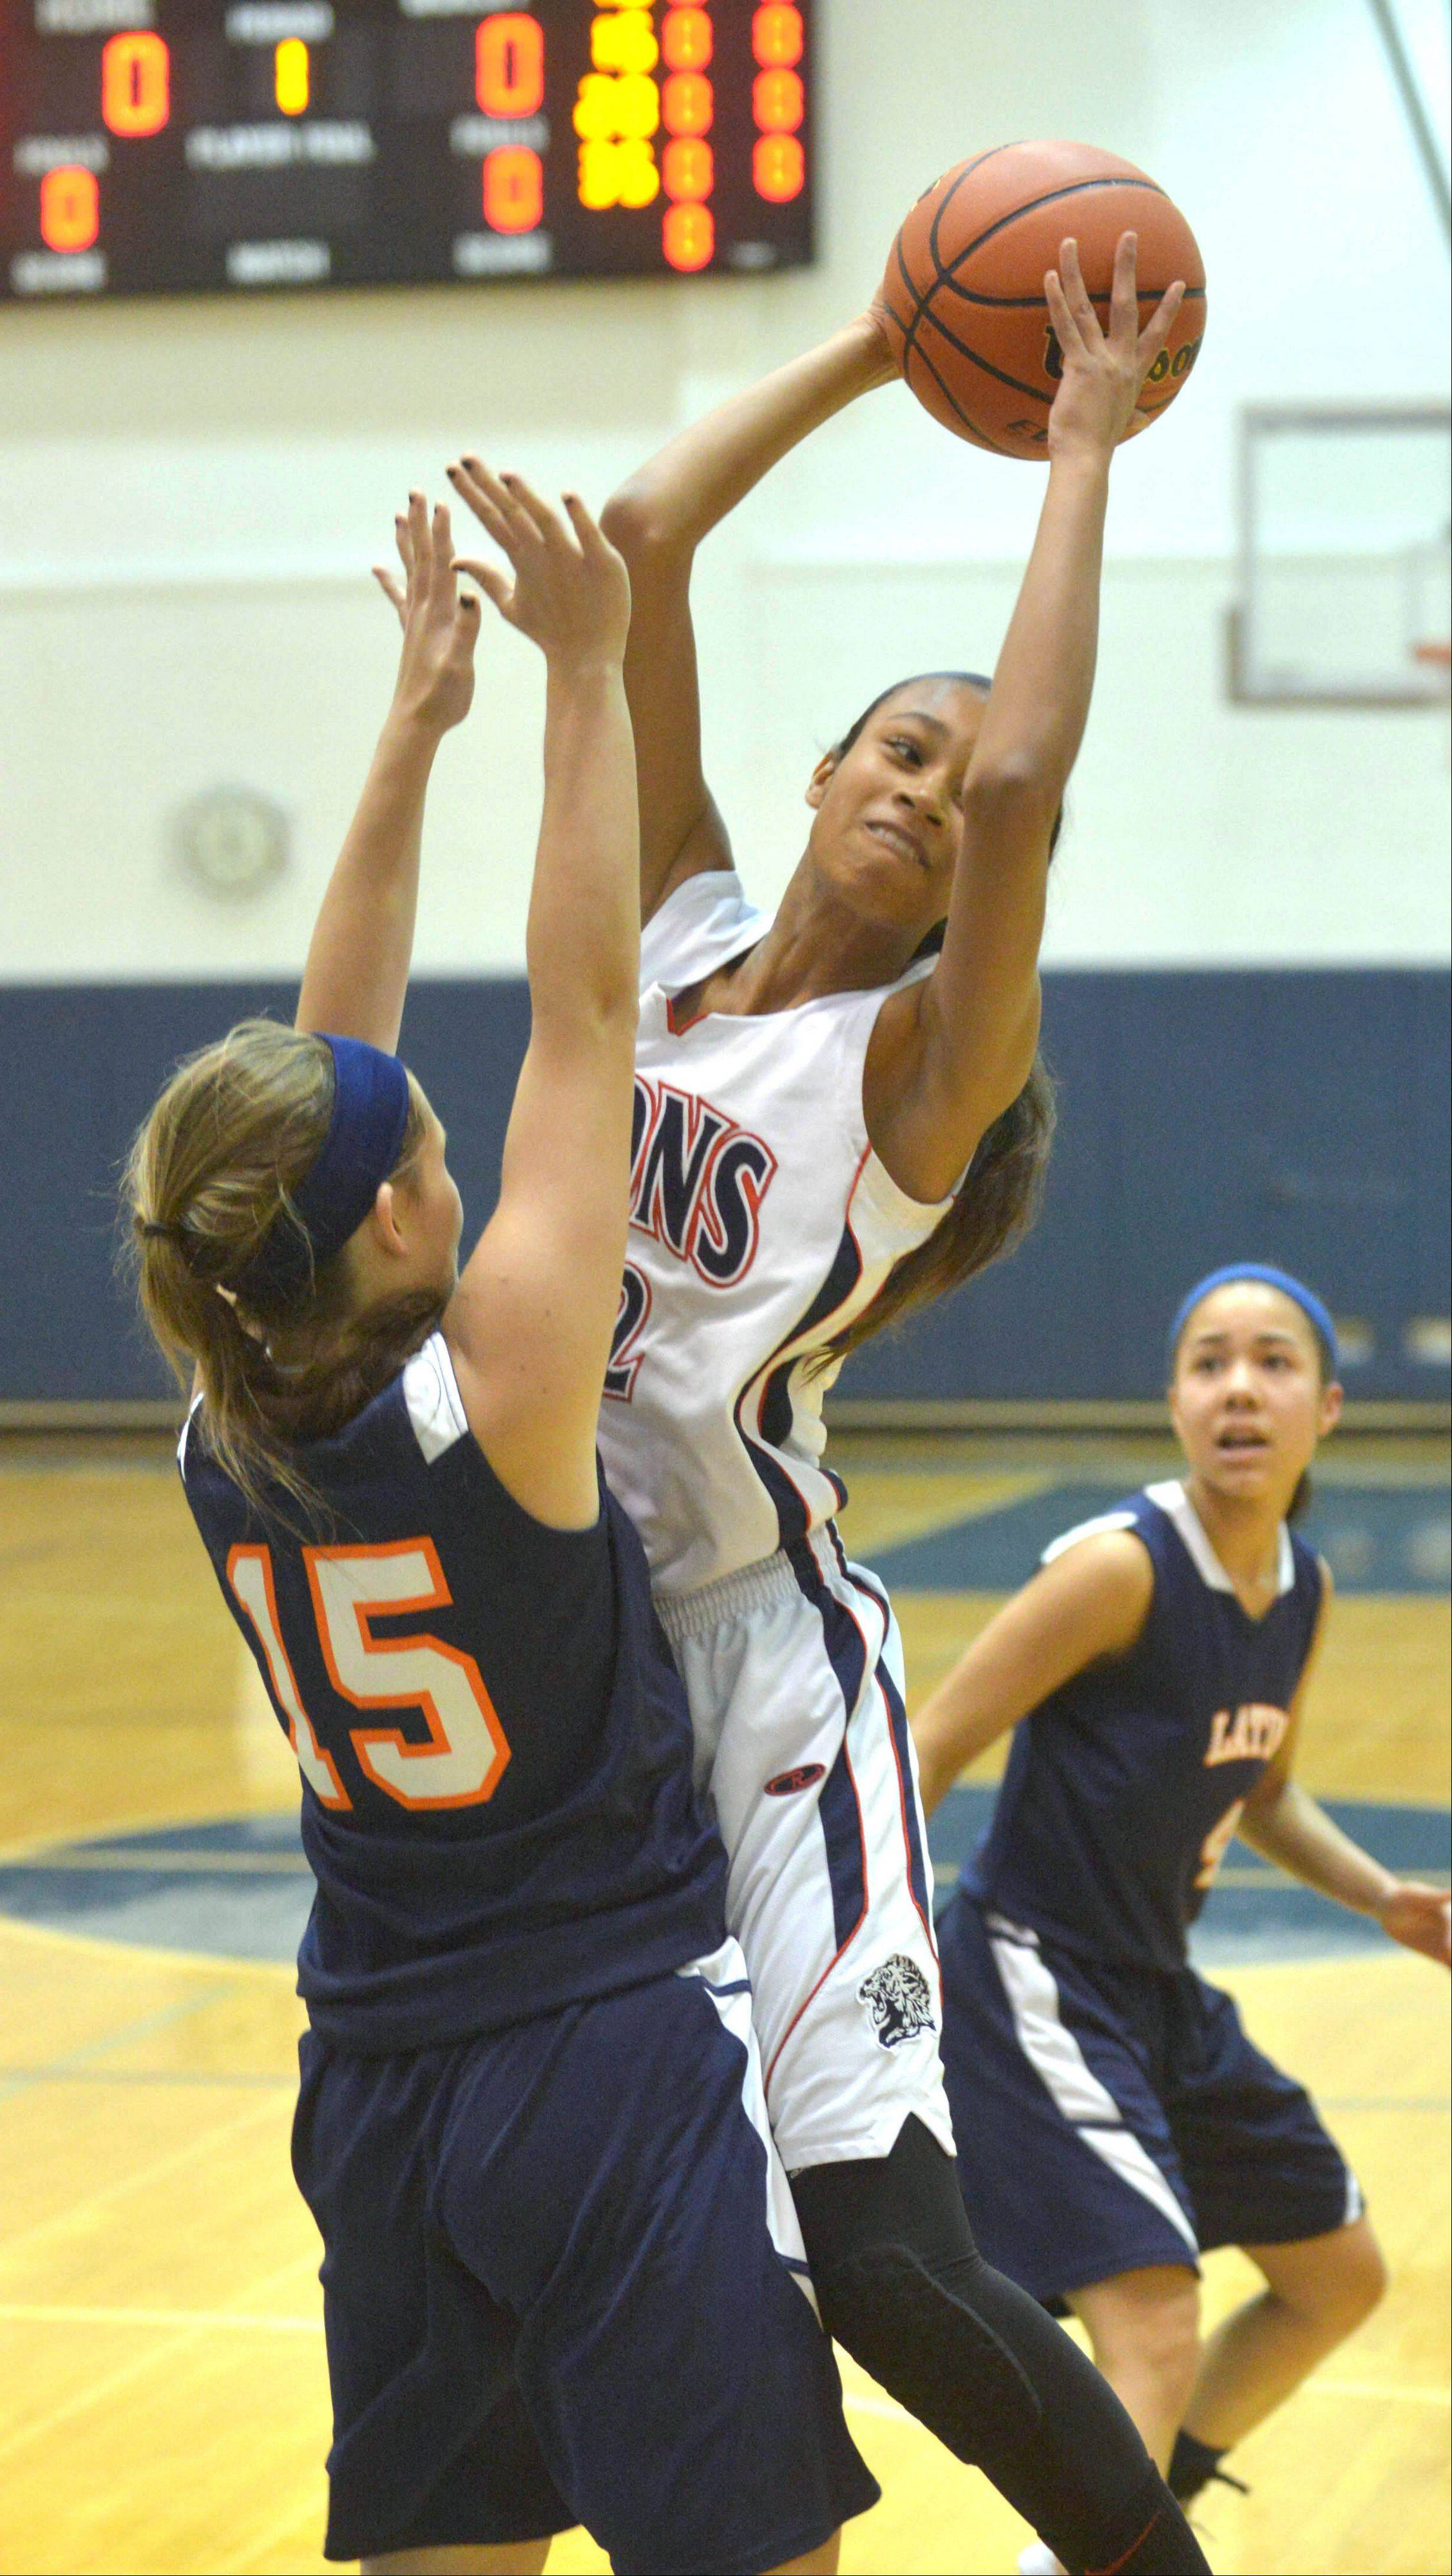 Tyann Legrand-Melton takes a shot over Jen Costa of Latin during the Latin at Lisle girls basketball game Thursday.